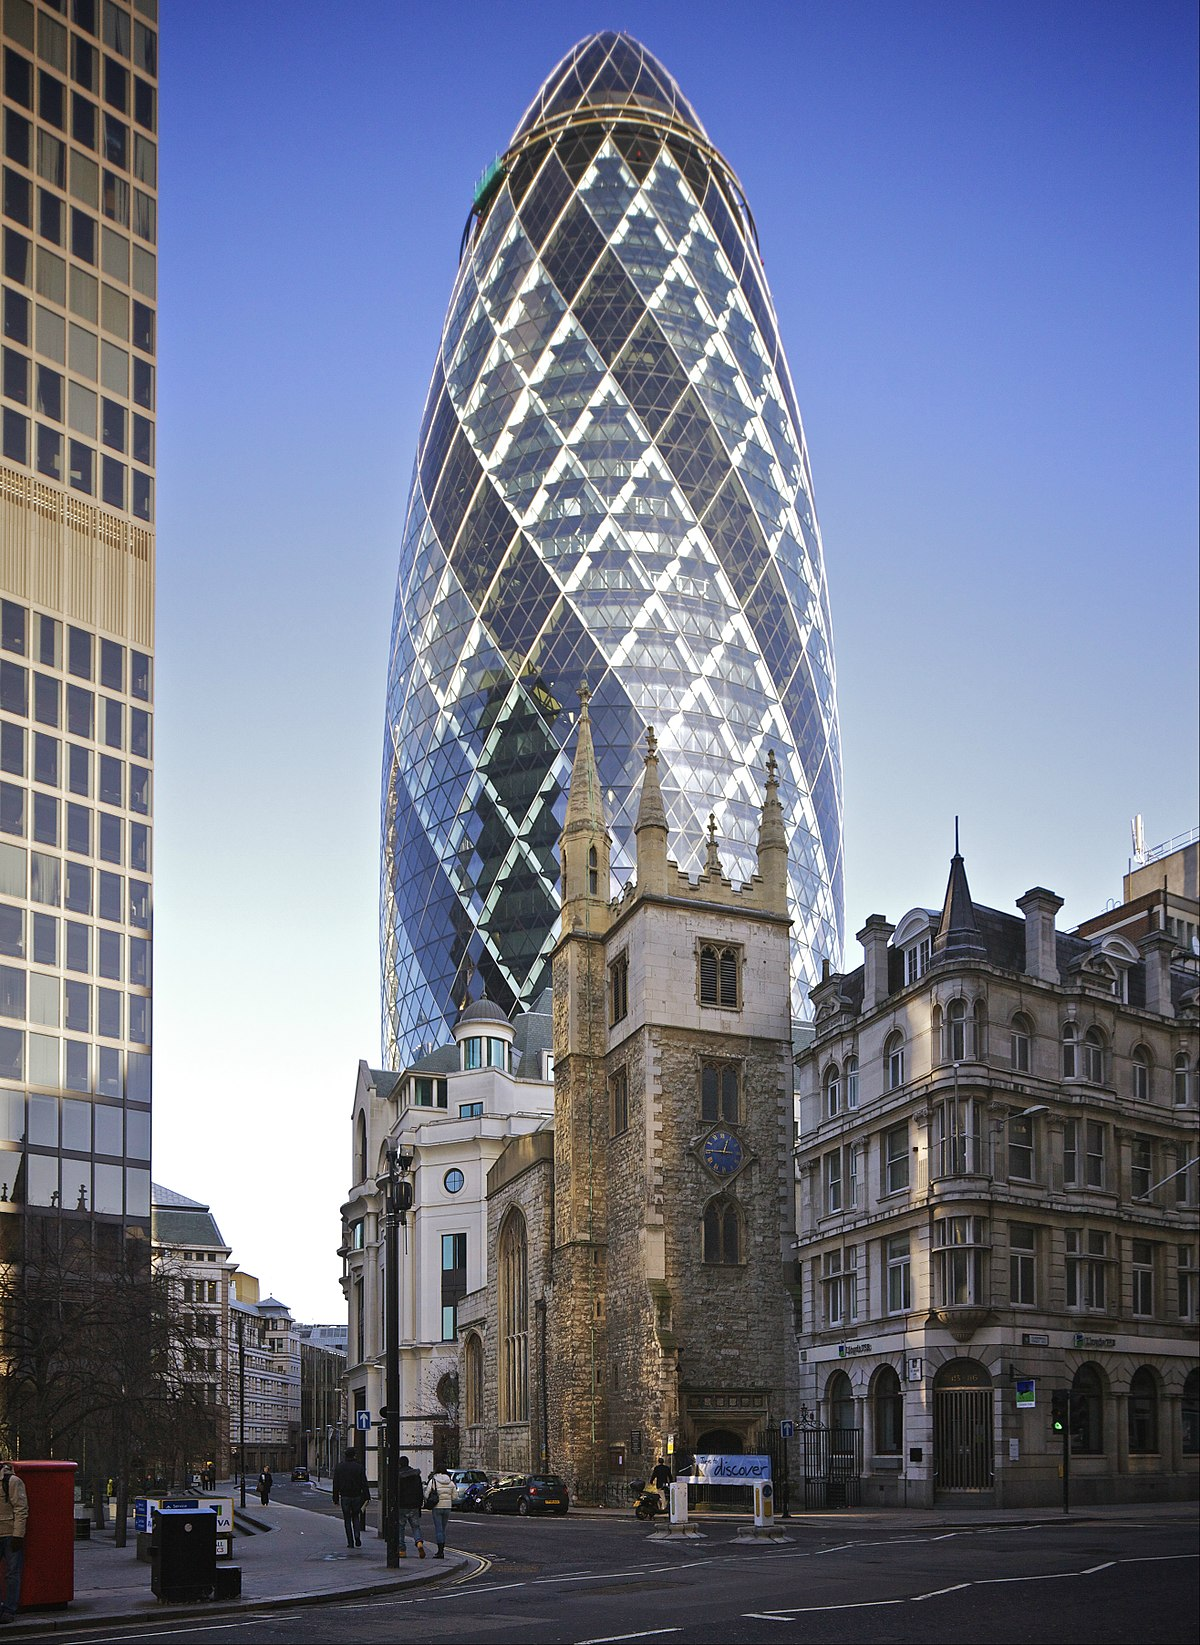 30 St Mary Axe - Wikipedia